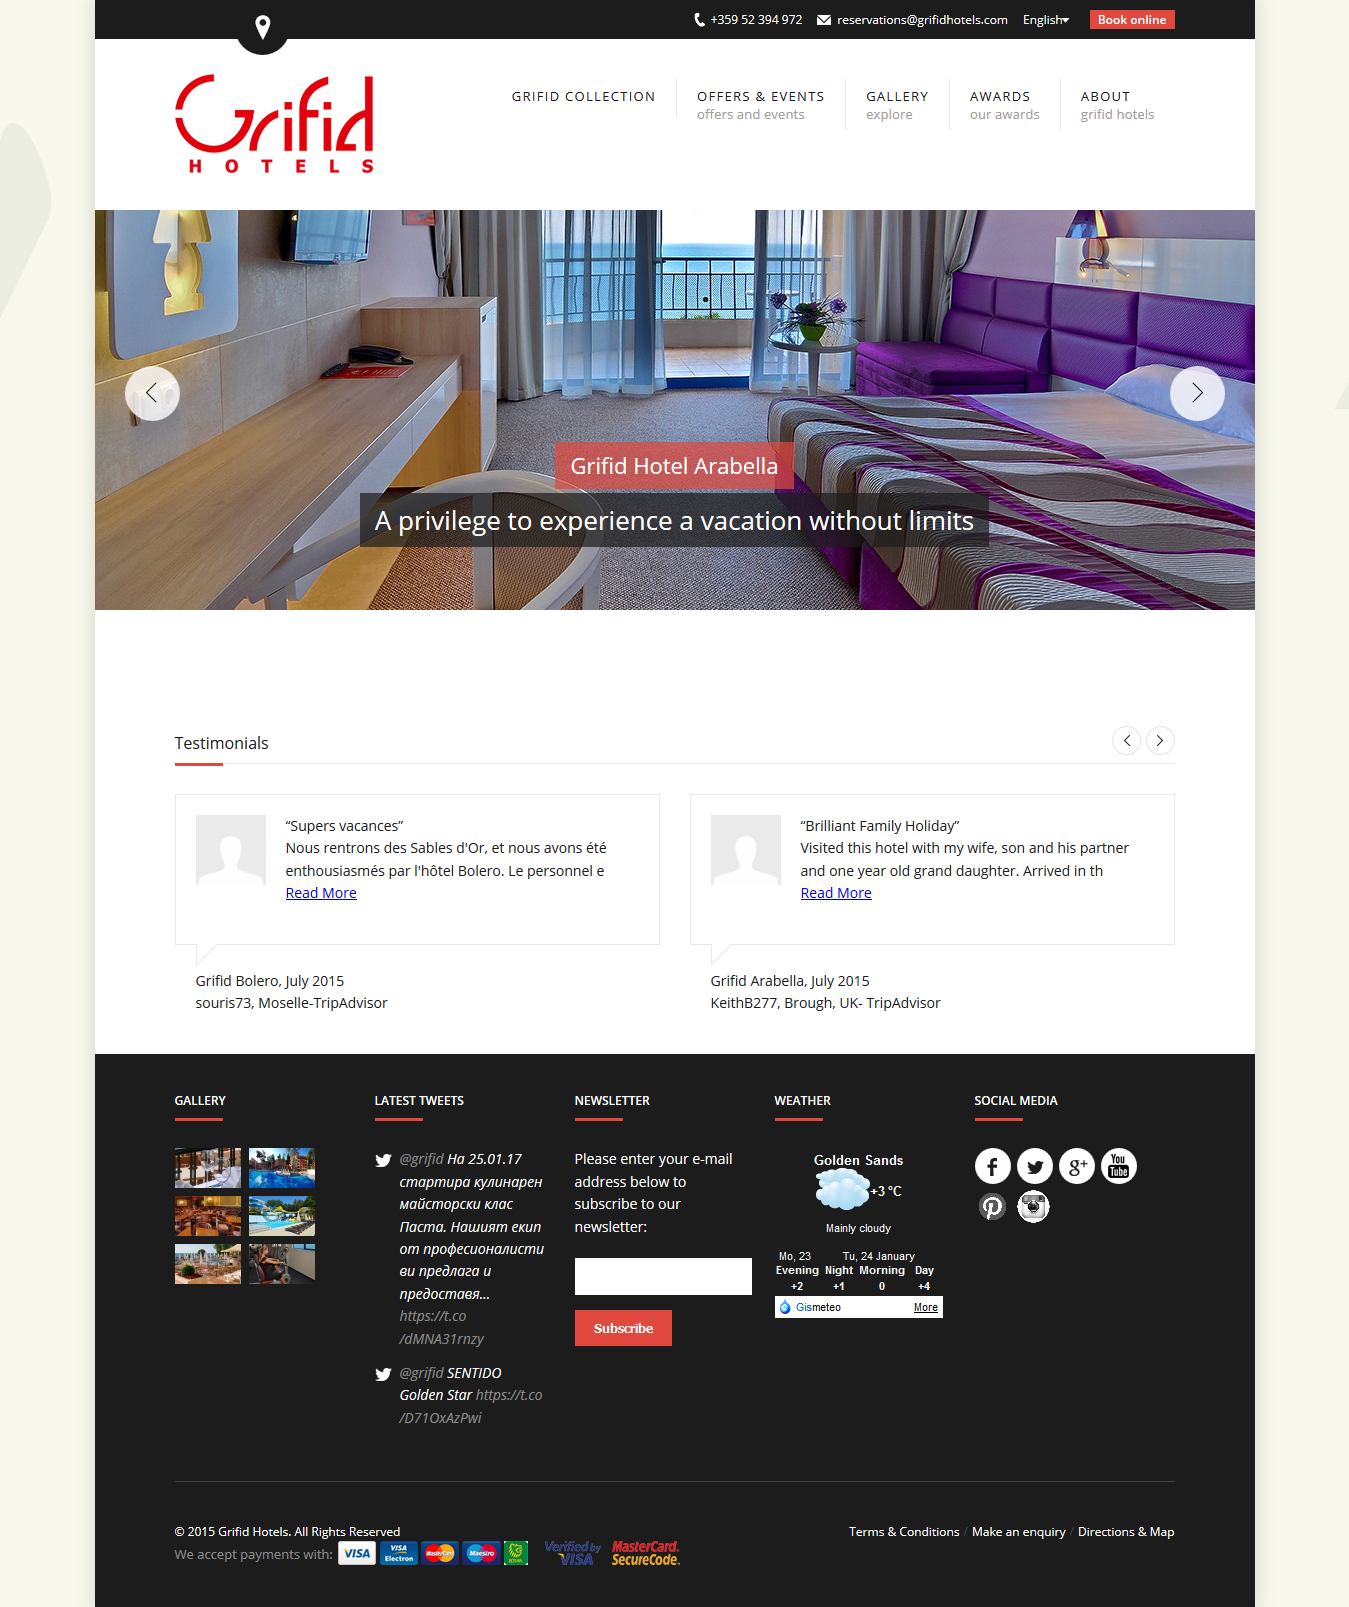 Grifidhotels – The Bulgarian hotel chain